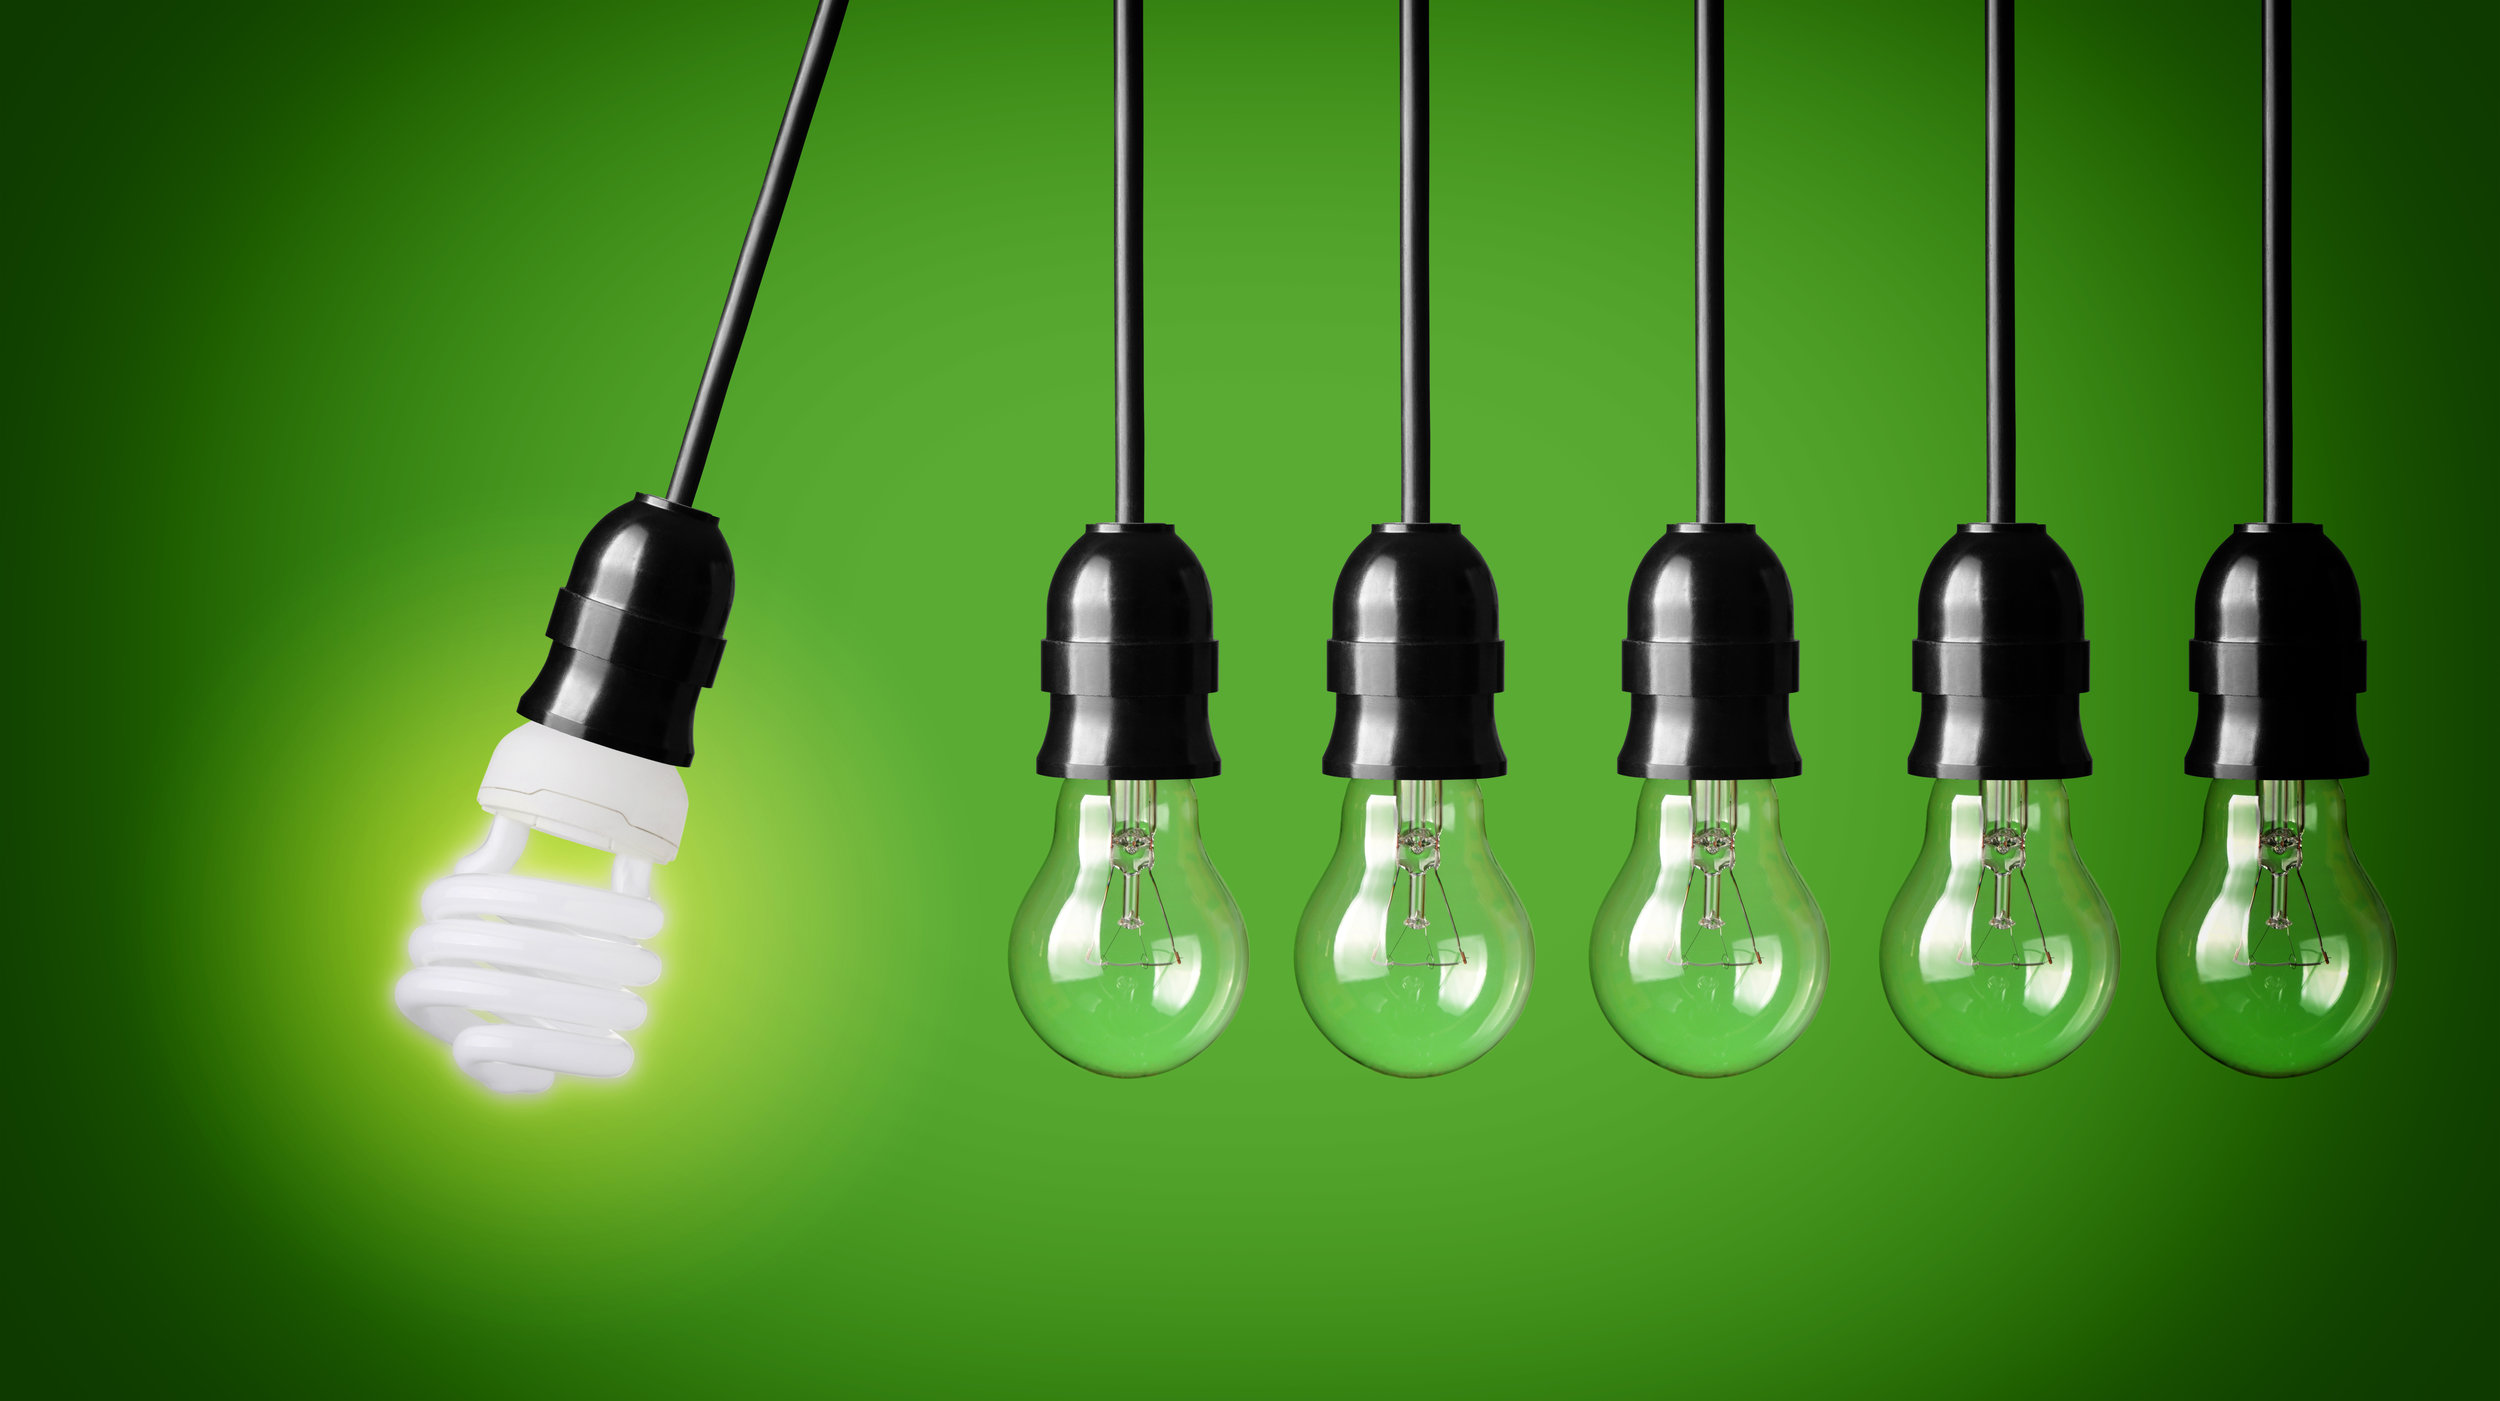 stock-photo-perpetual-motion-with-light-bulbs-and-energy-saver-bulb-idea-concept-on-green-background-130427690.jpg